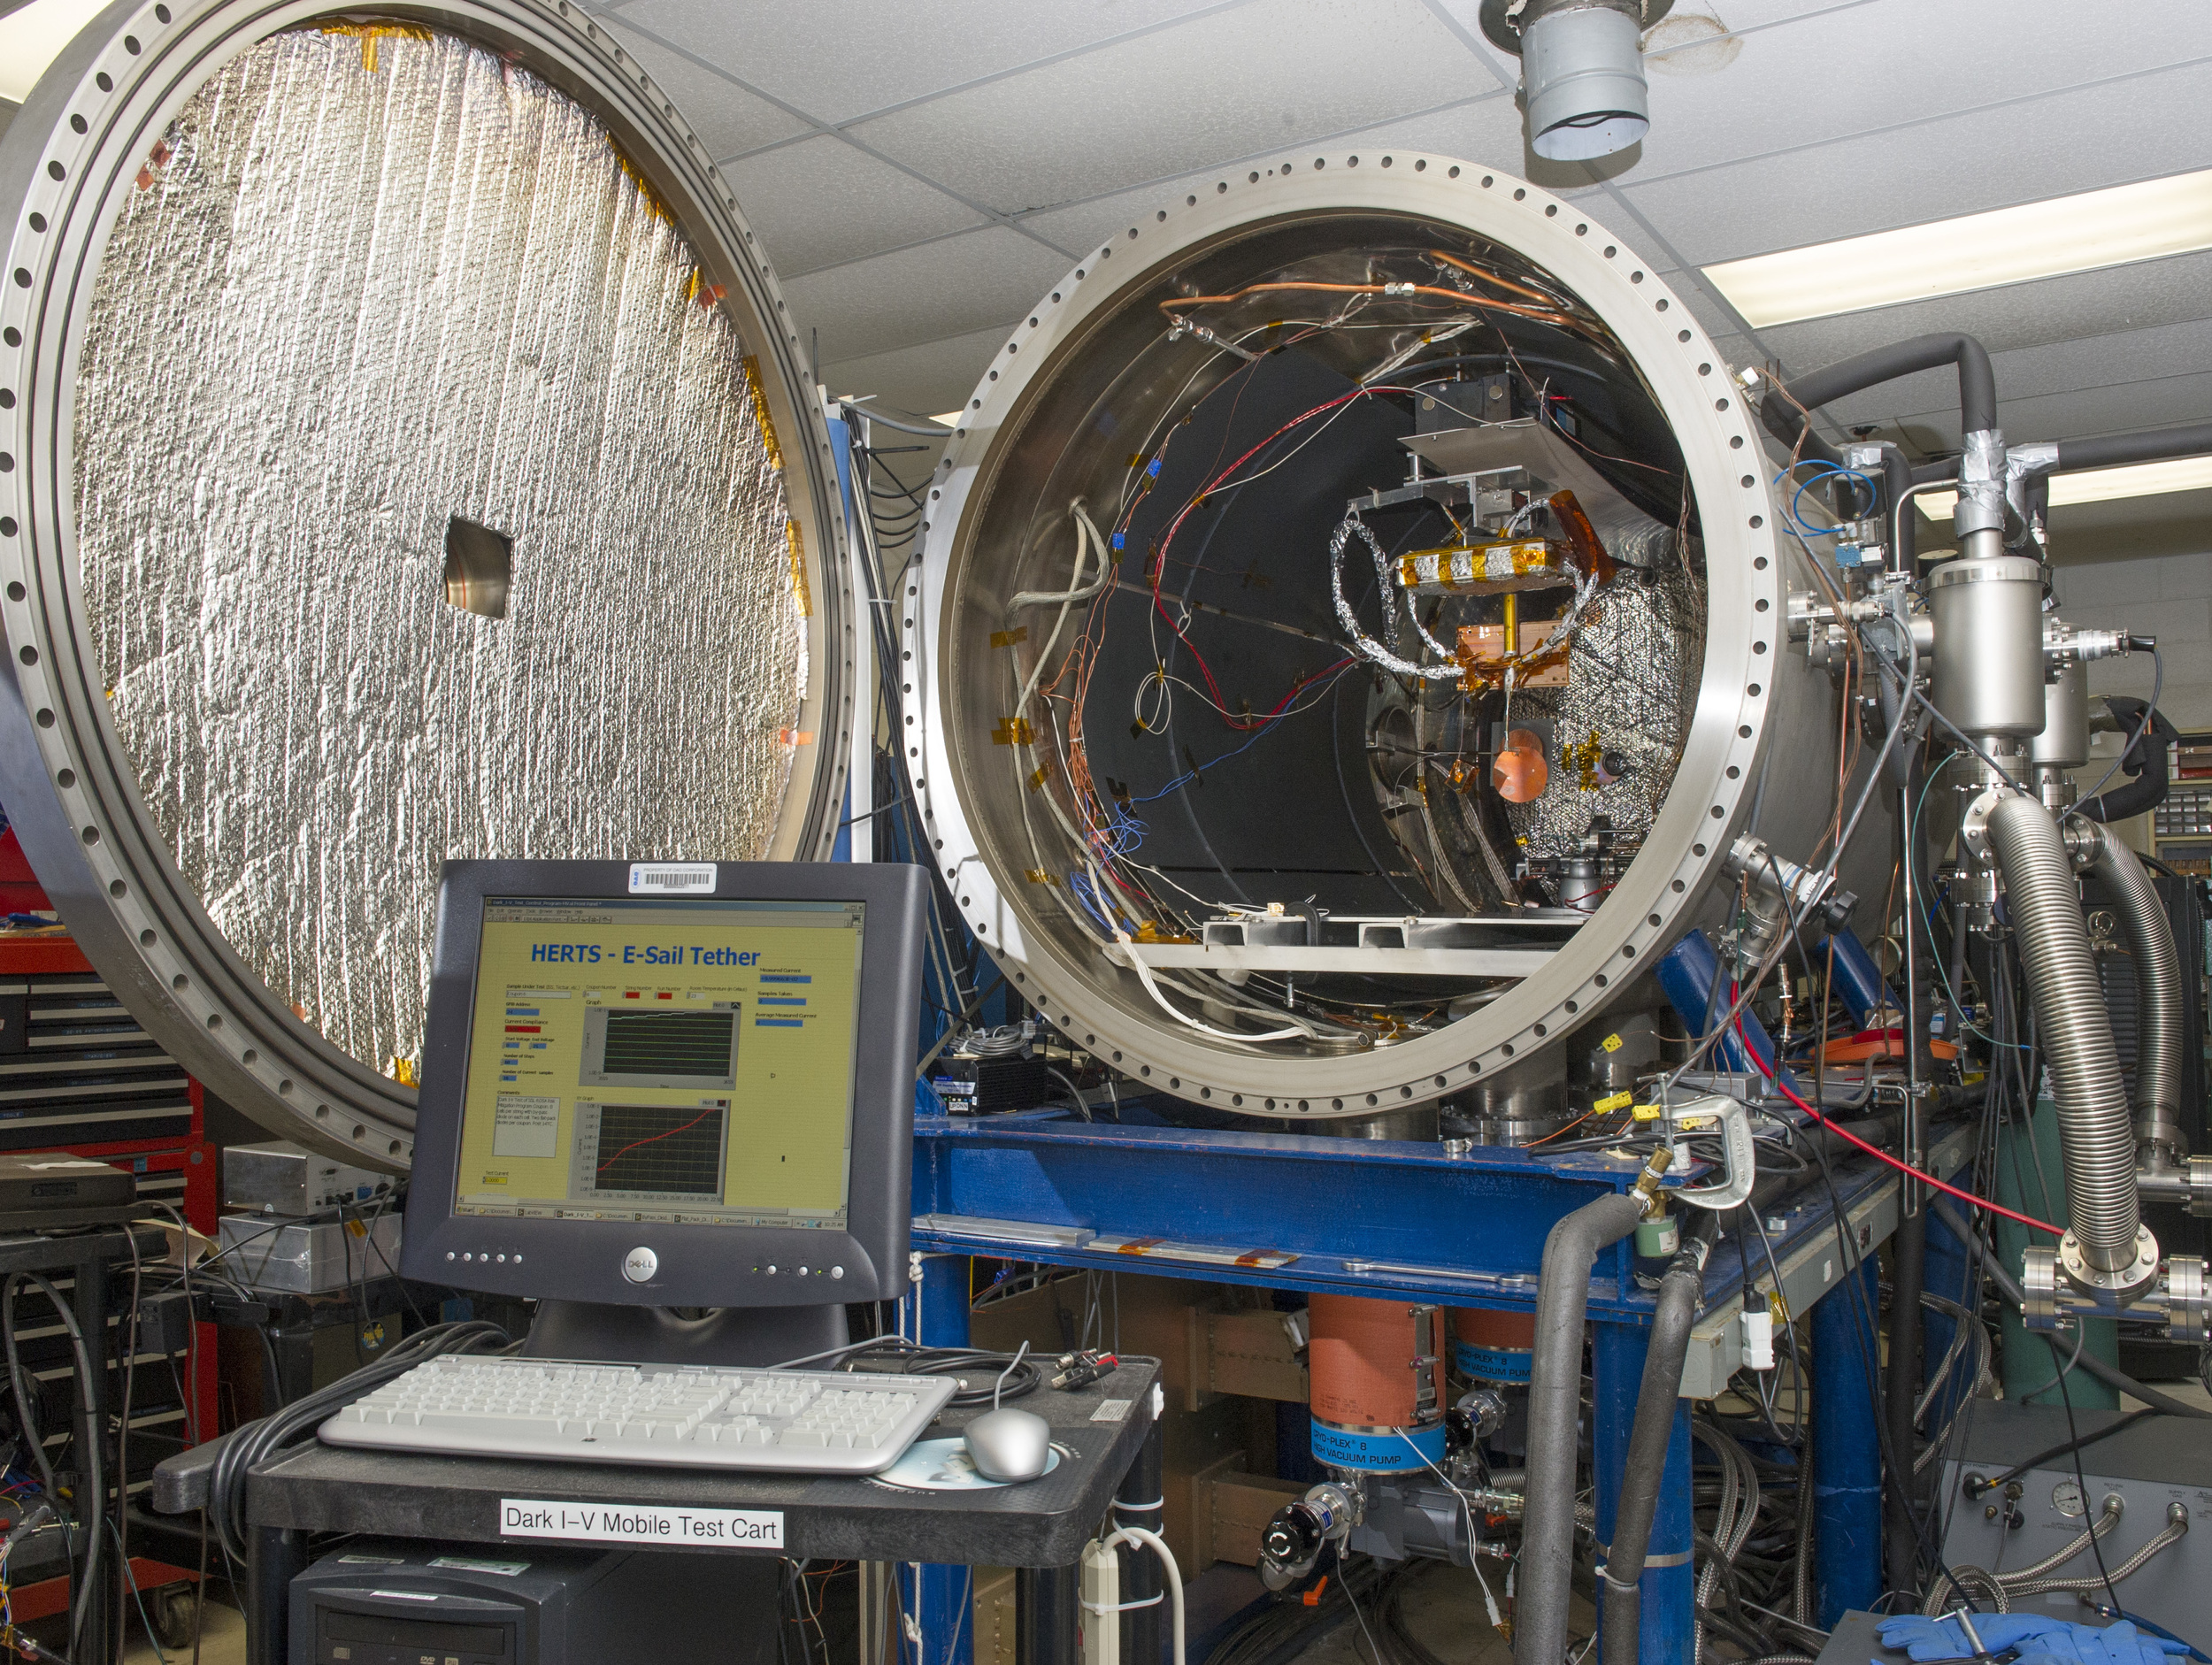 Within a controlled plasma chamber -- the High Intensity Solar Environment Test system -- tests will examine the rate of proton and electron collisions with a positively charged tether. Results will help improve modeling data that will be applied to future development of E-Sail technology concept. - Image Credits: NASA/MSFC/Emmett Given